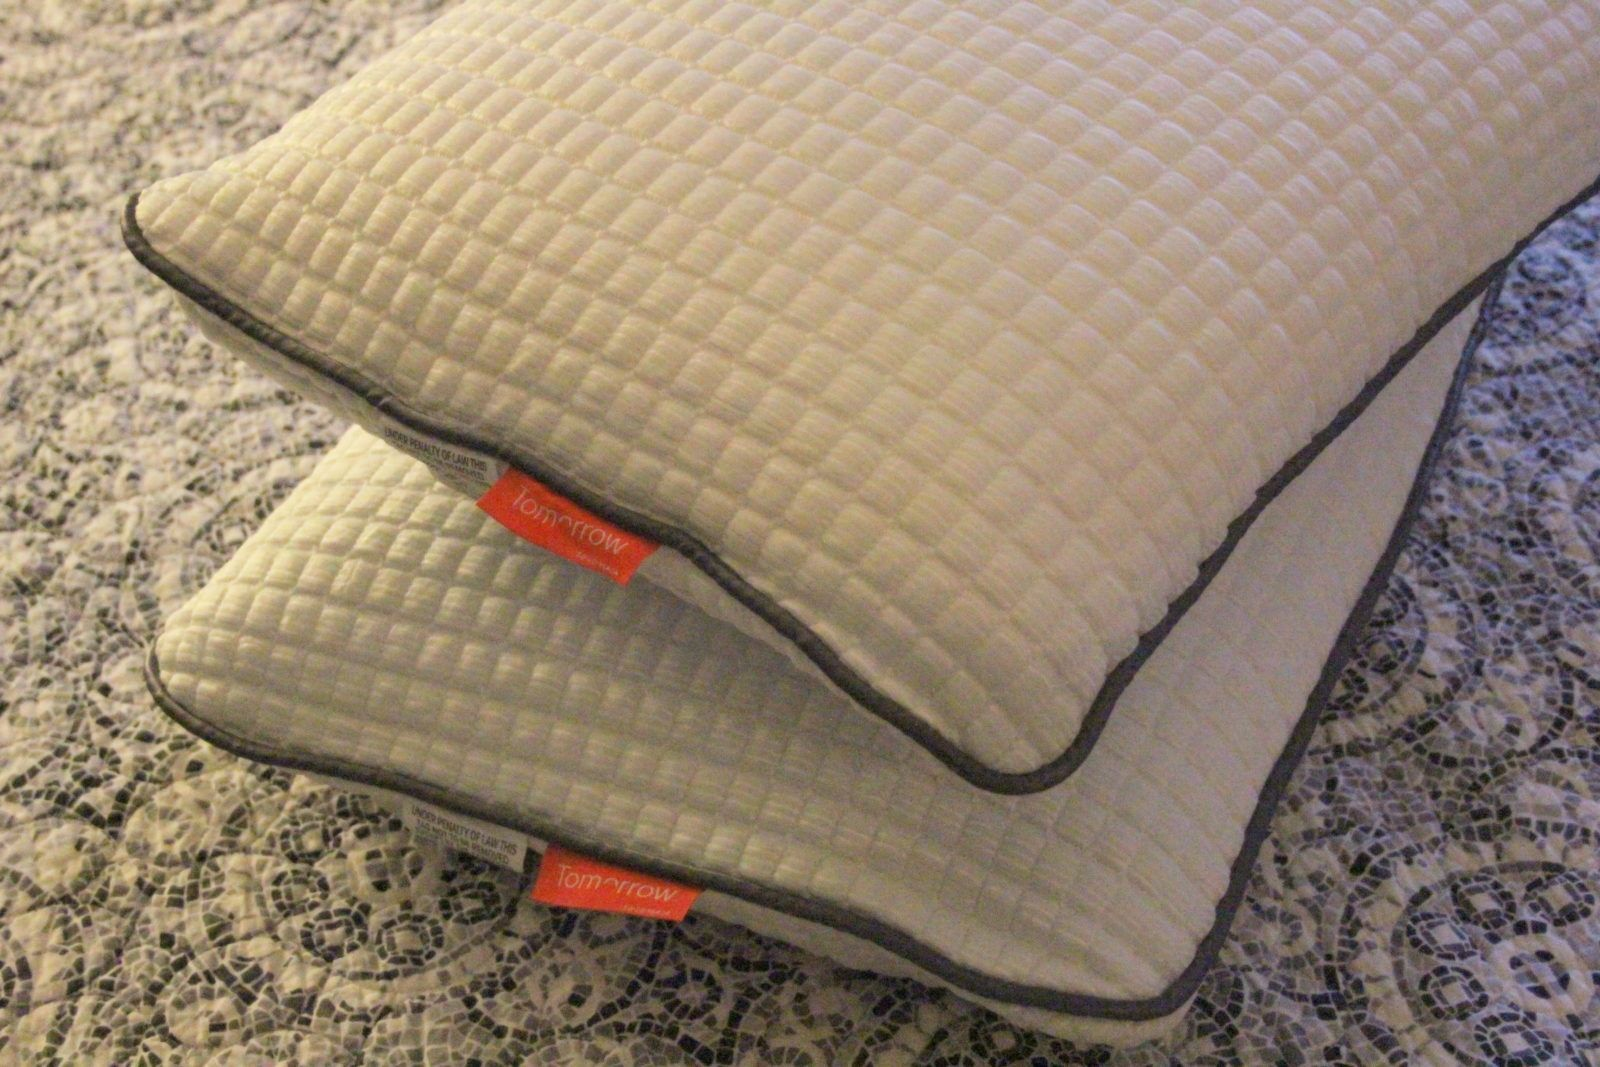 the best memory foam pillows tomorrow sleep memory foam pillow